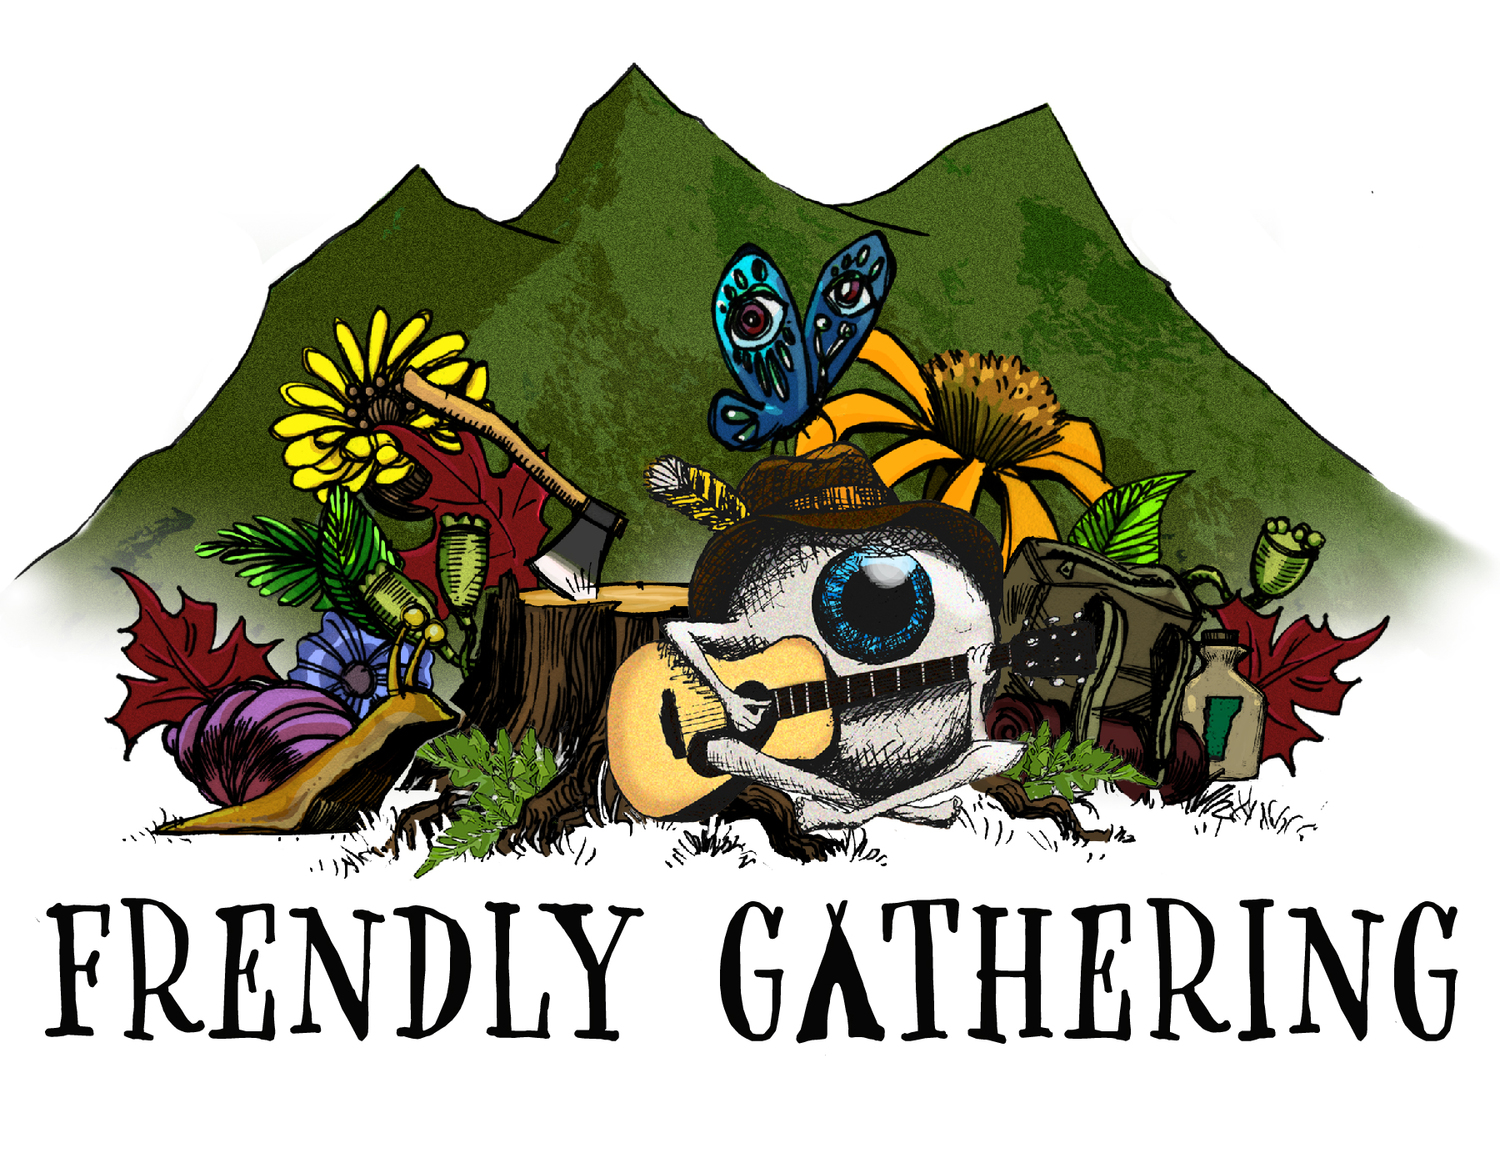 Frendly Gathering